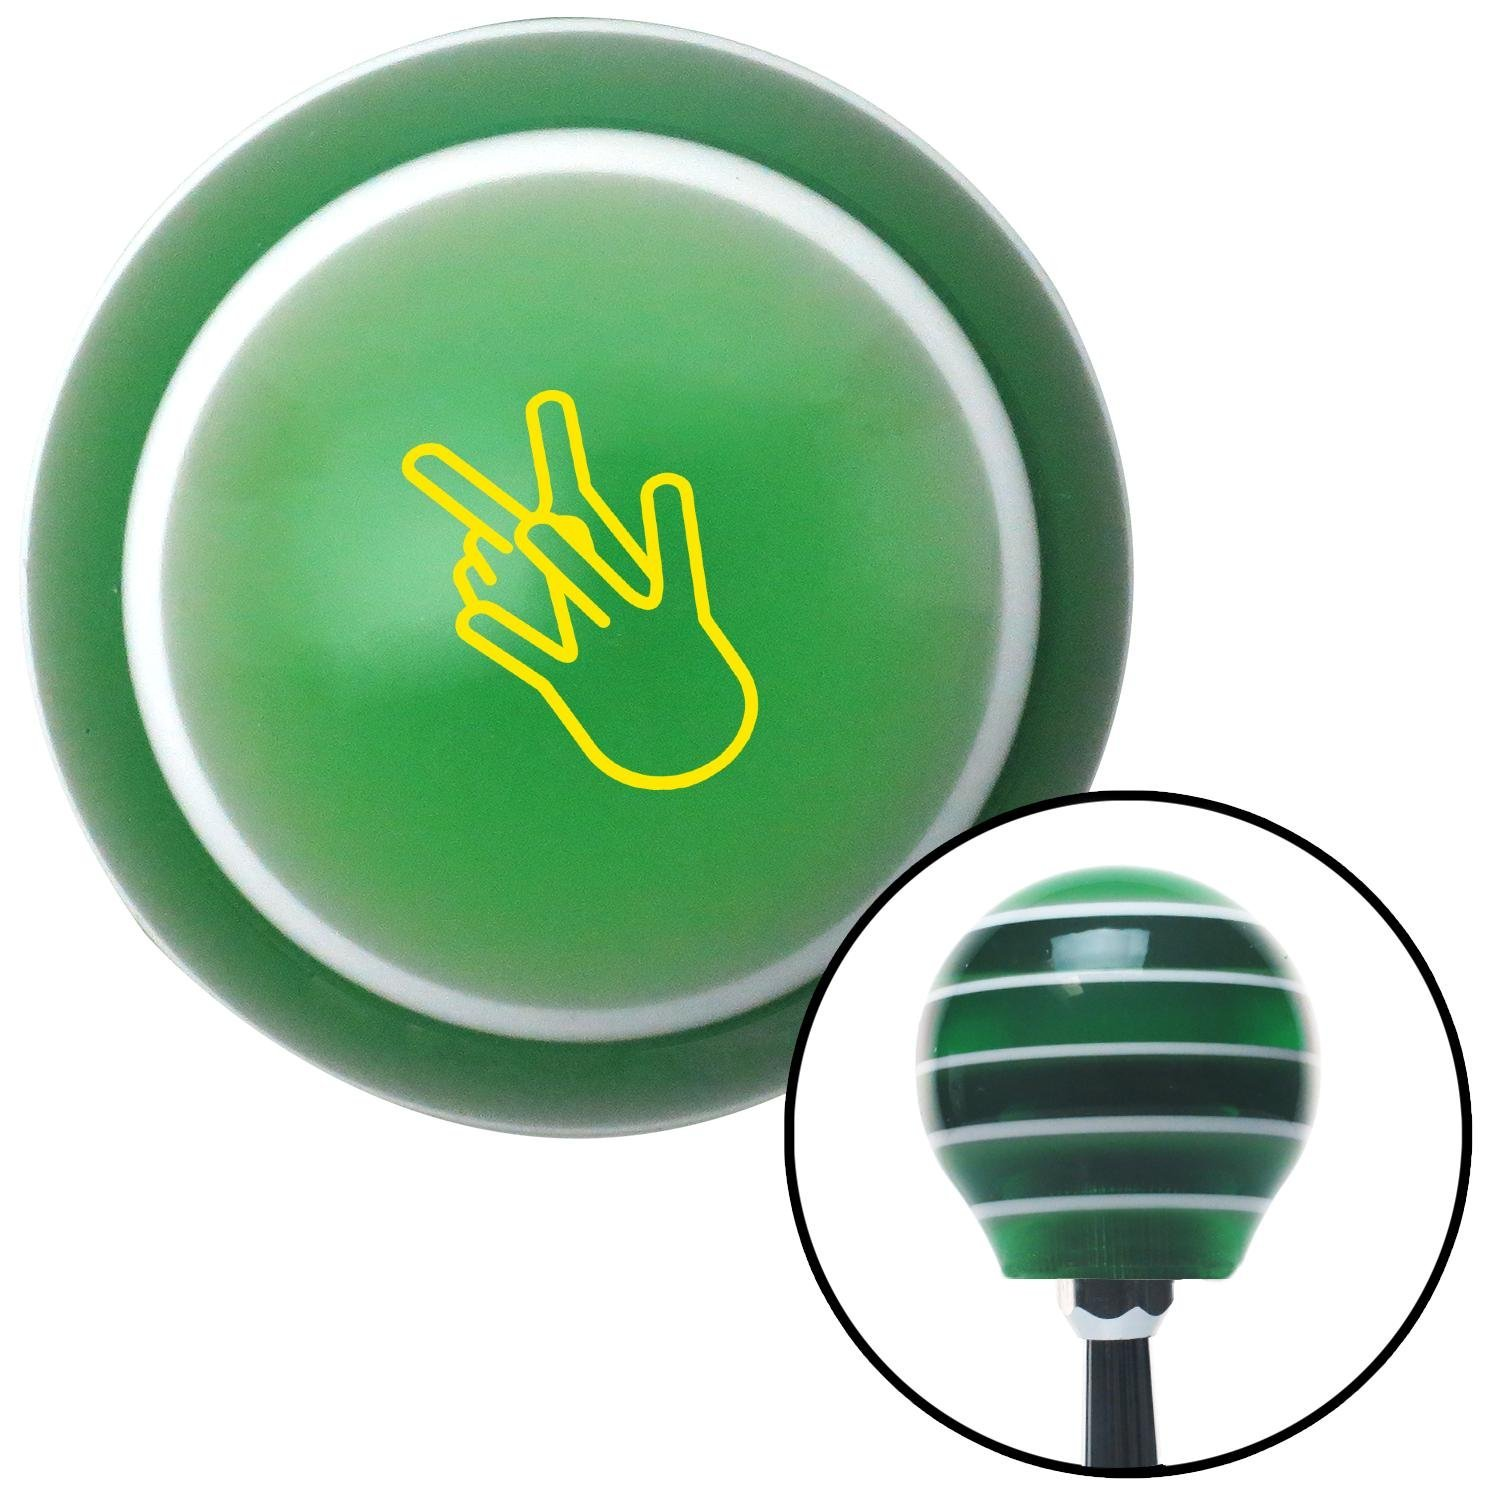 American Shifter 276001 Shift Knob Yellow VW Hands Green Stripe with M16 x 1.5 Insert